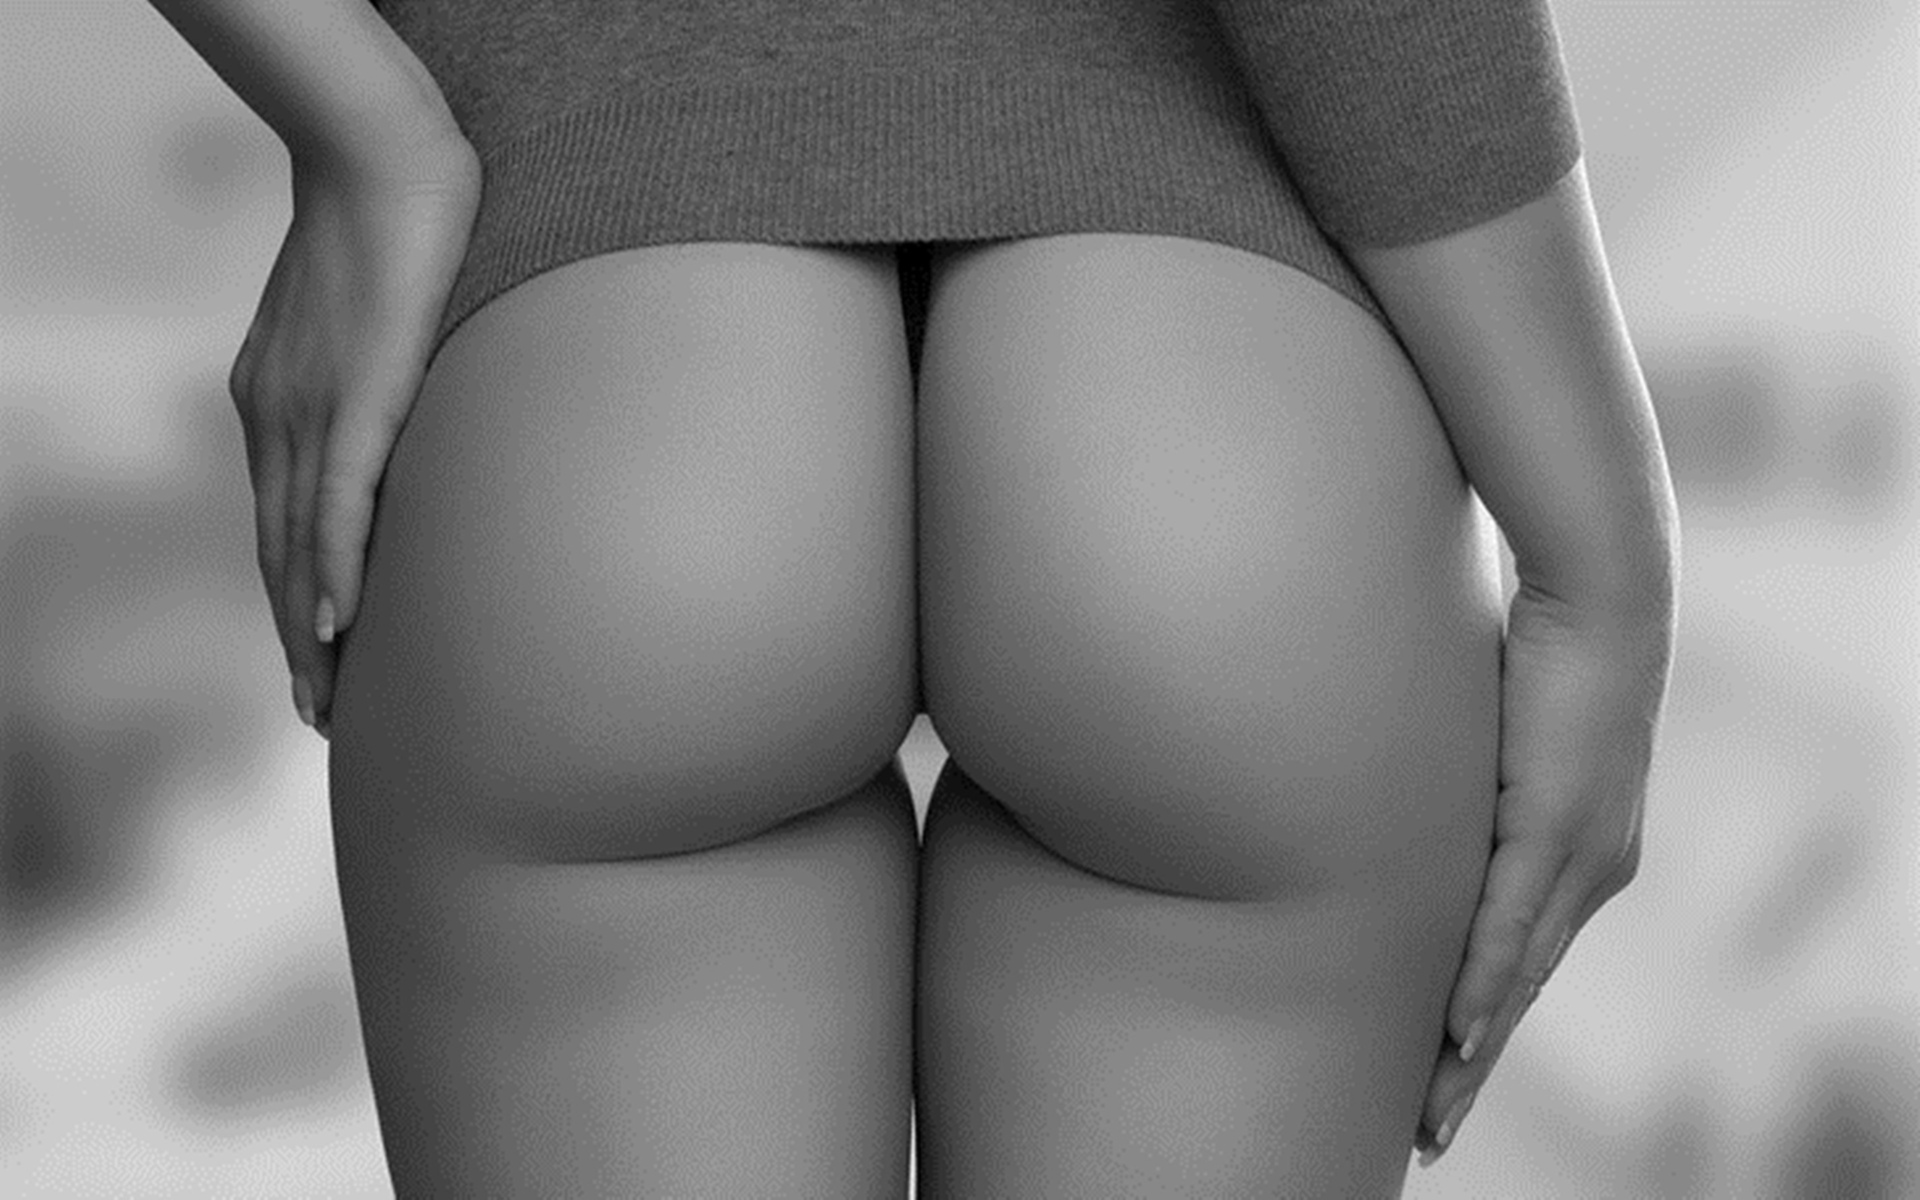 Hot butt girls — photo 3